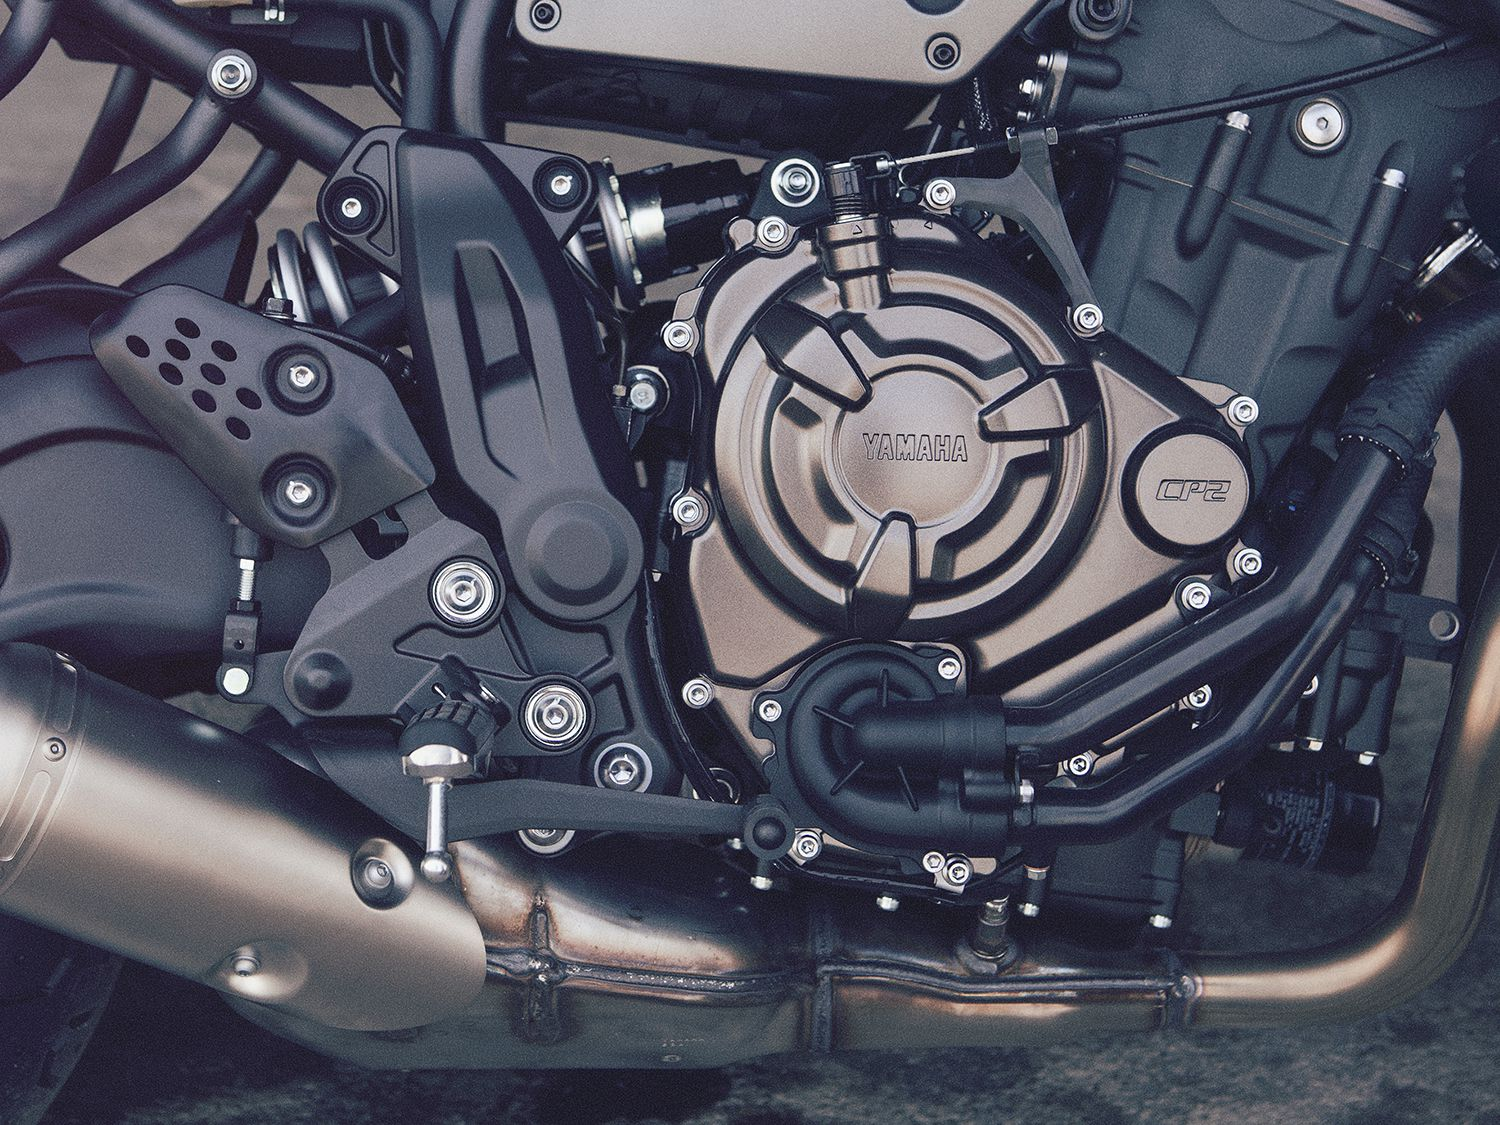 A 689cc inline-twin sits at the heart of the XSR700 as a stressed member of the frame.